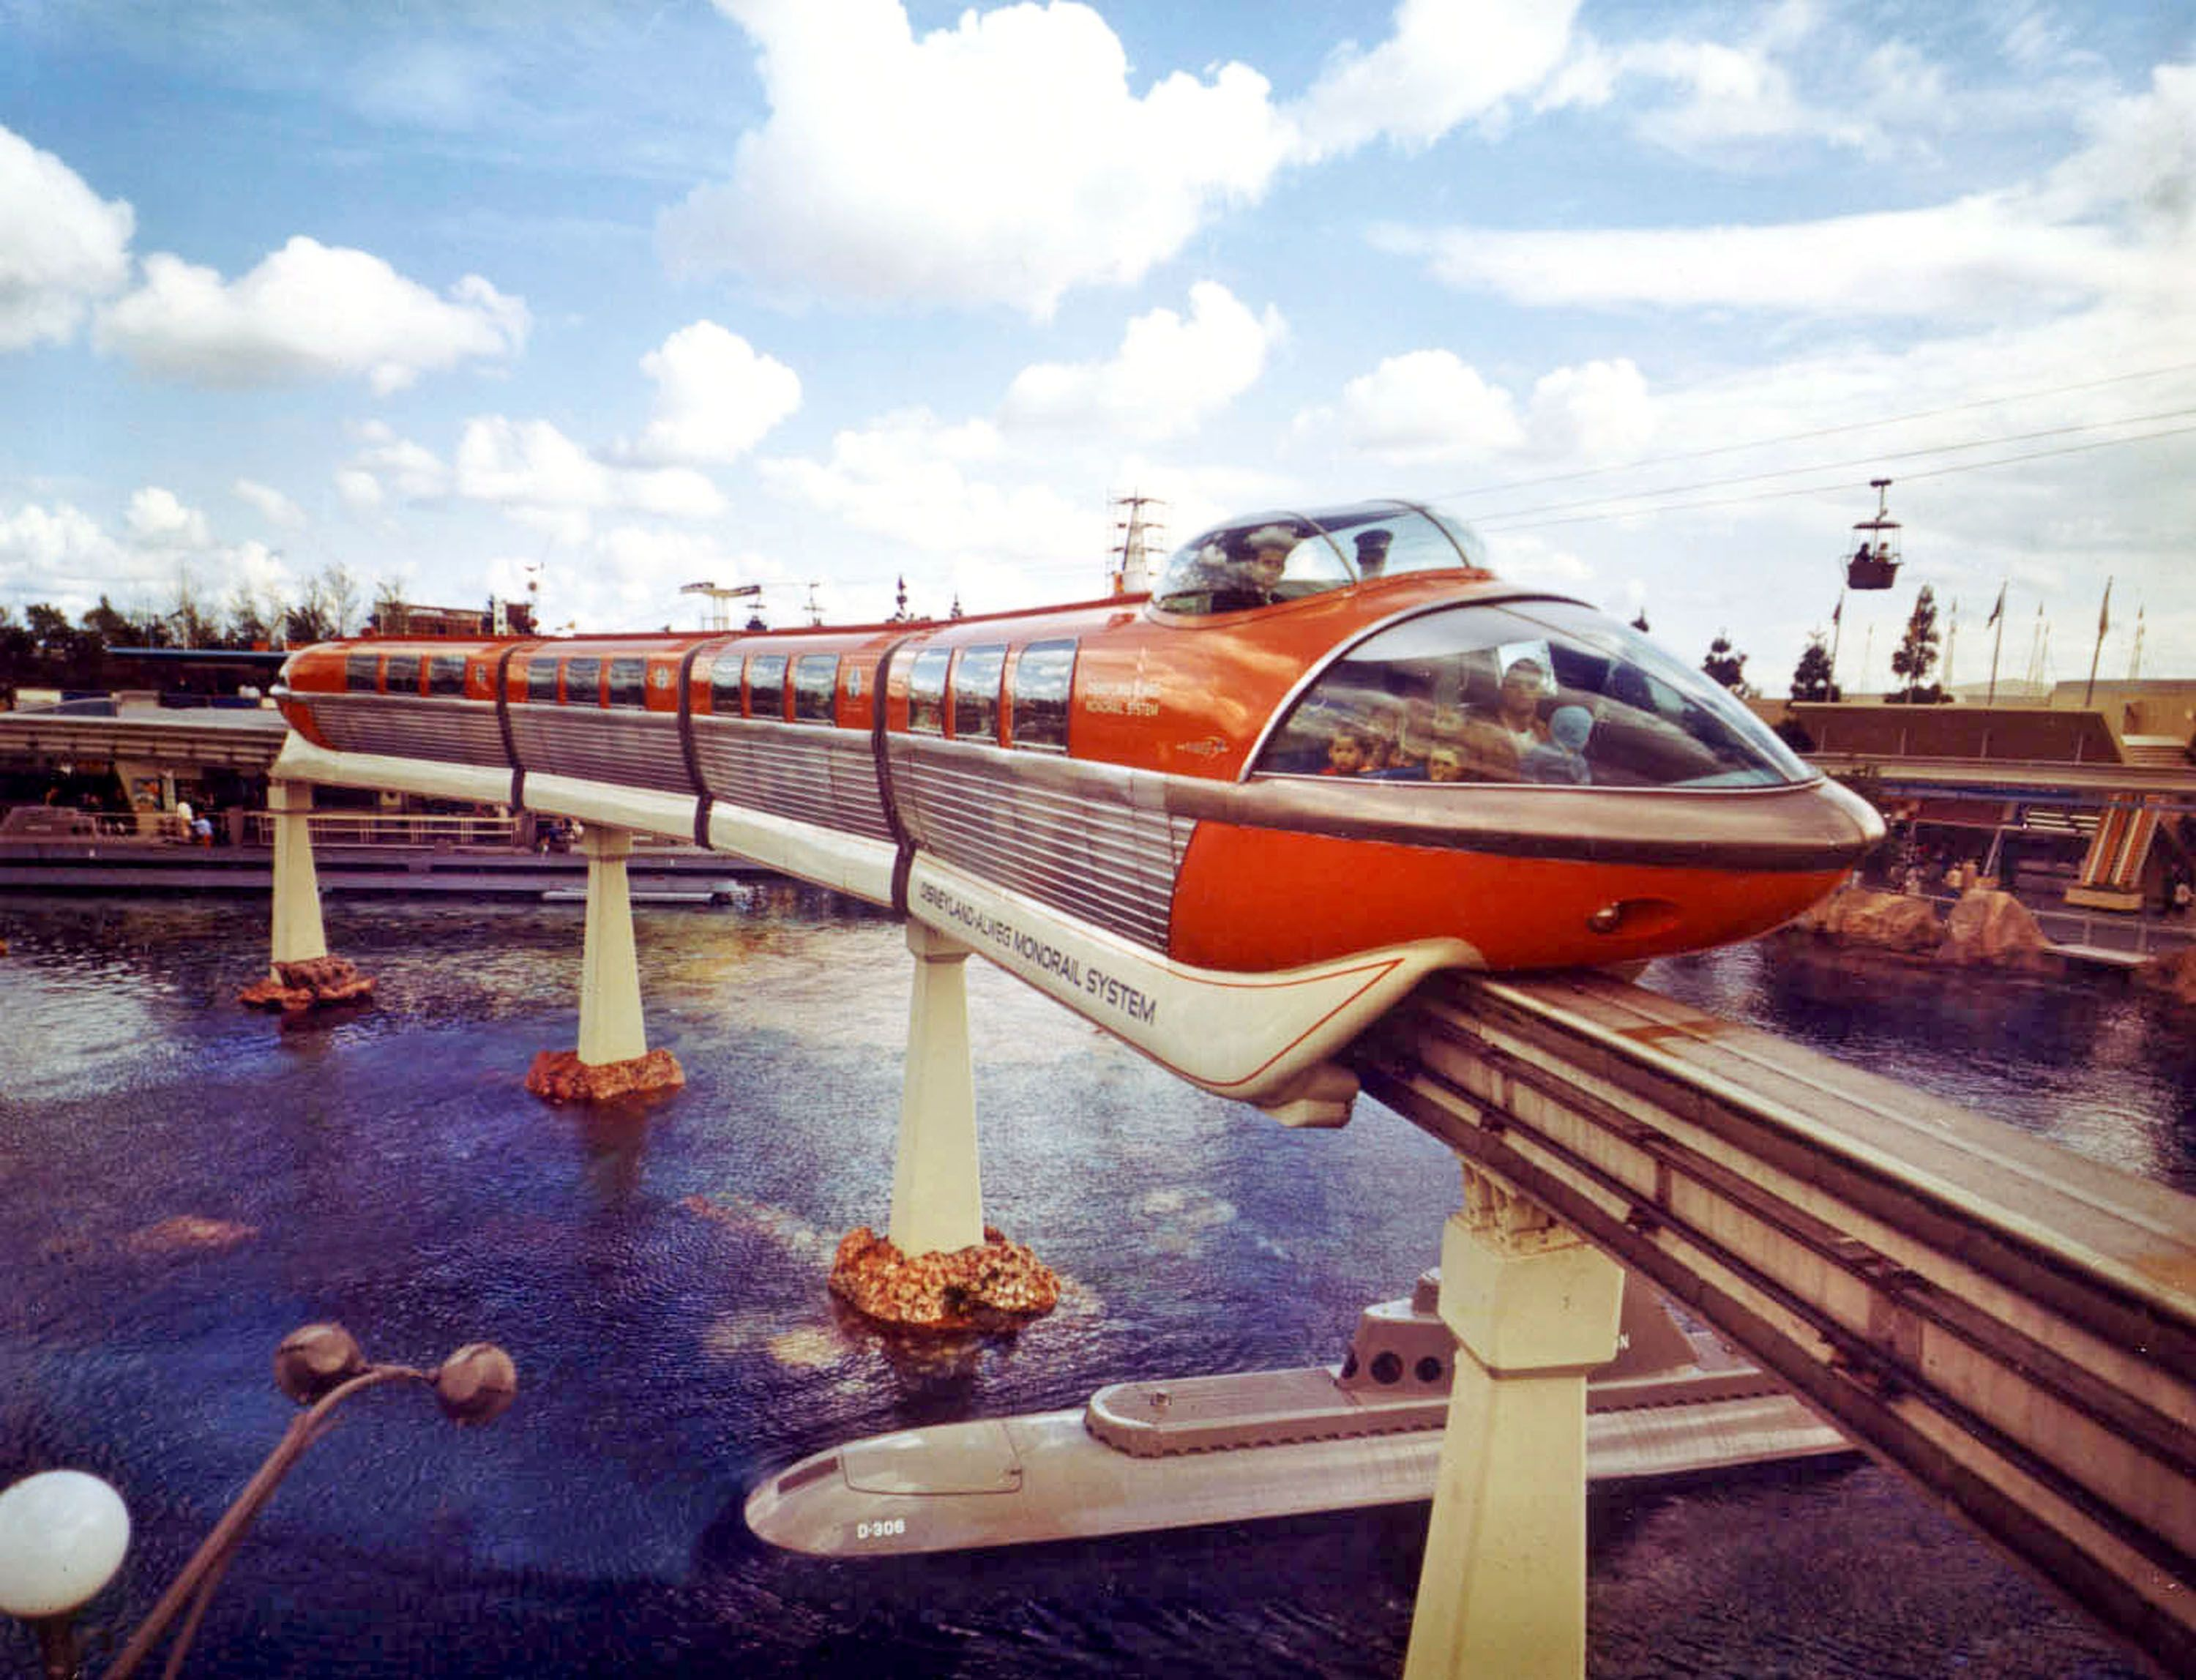 history of disneyland When disneyland opened on july 17, 1955, tickets cost $1, and visitors could   learn about events in your area, and get your weekly fix of american history.